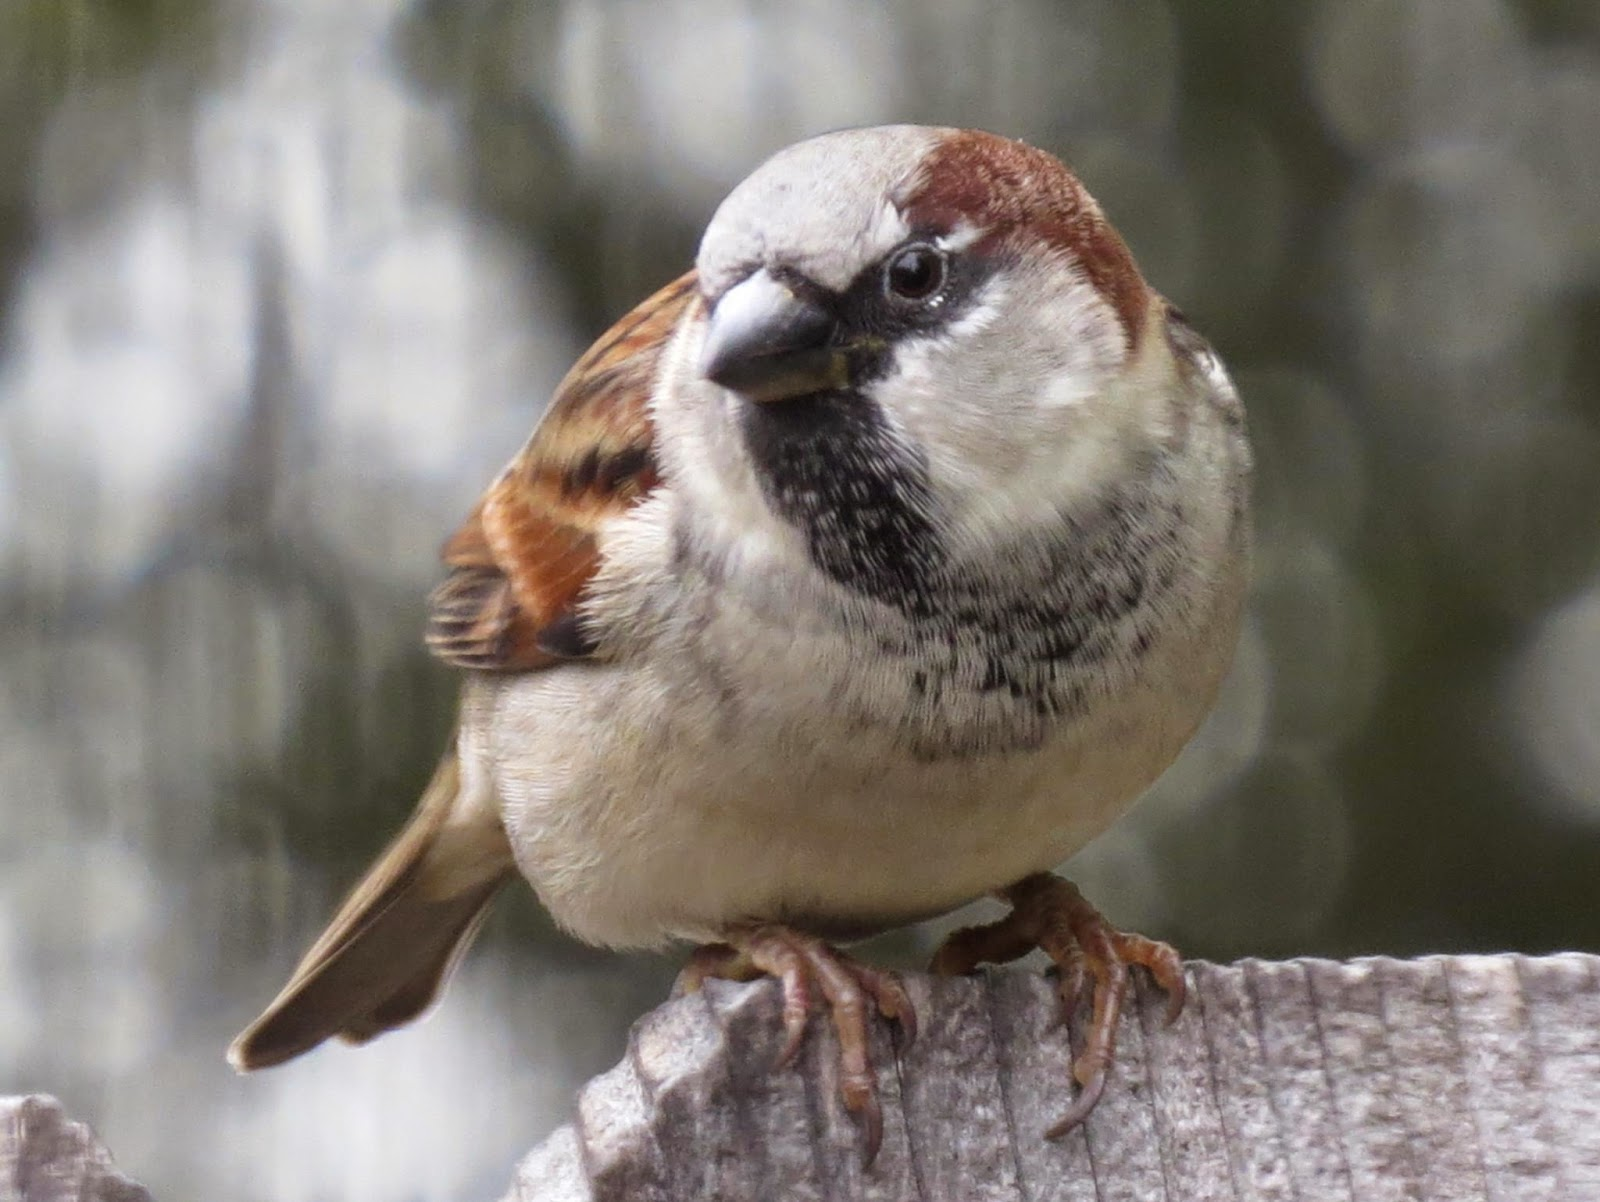 Se texas birding wildlife watching november 2014 there is a birdhouse on the wall of our garden shed right opposite our main living room window the other day i was excited to catch a glimpse of movement thecheapjerseys Image collections